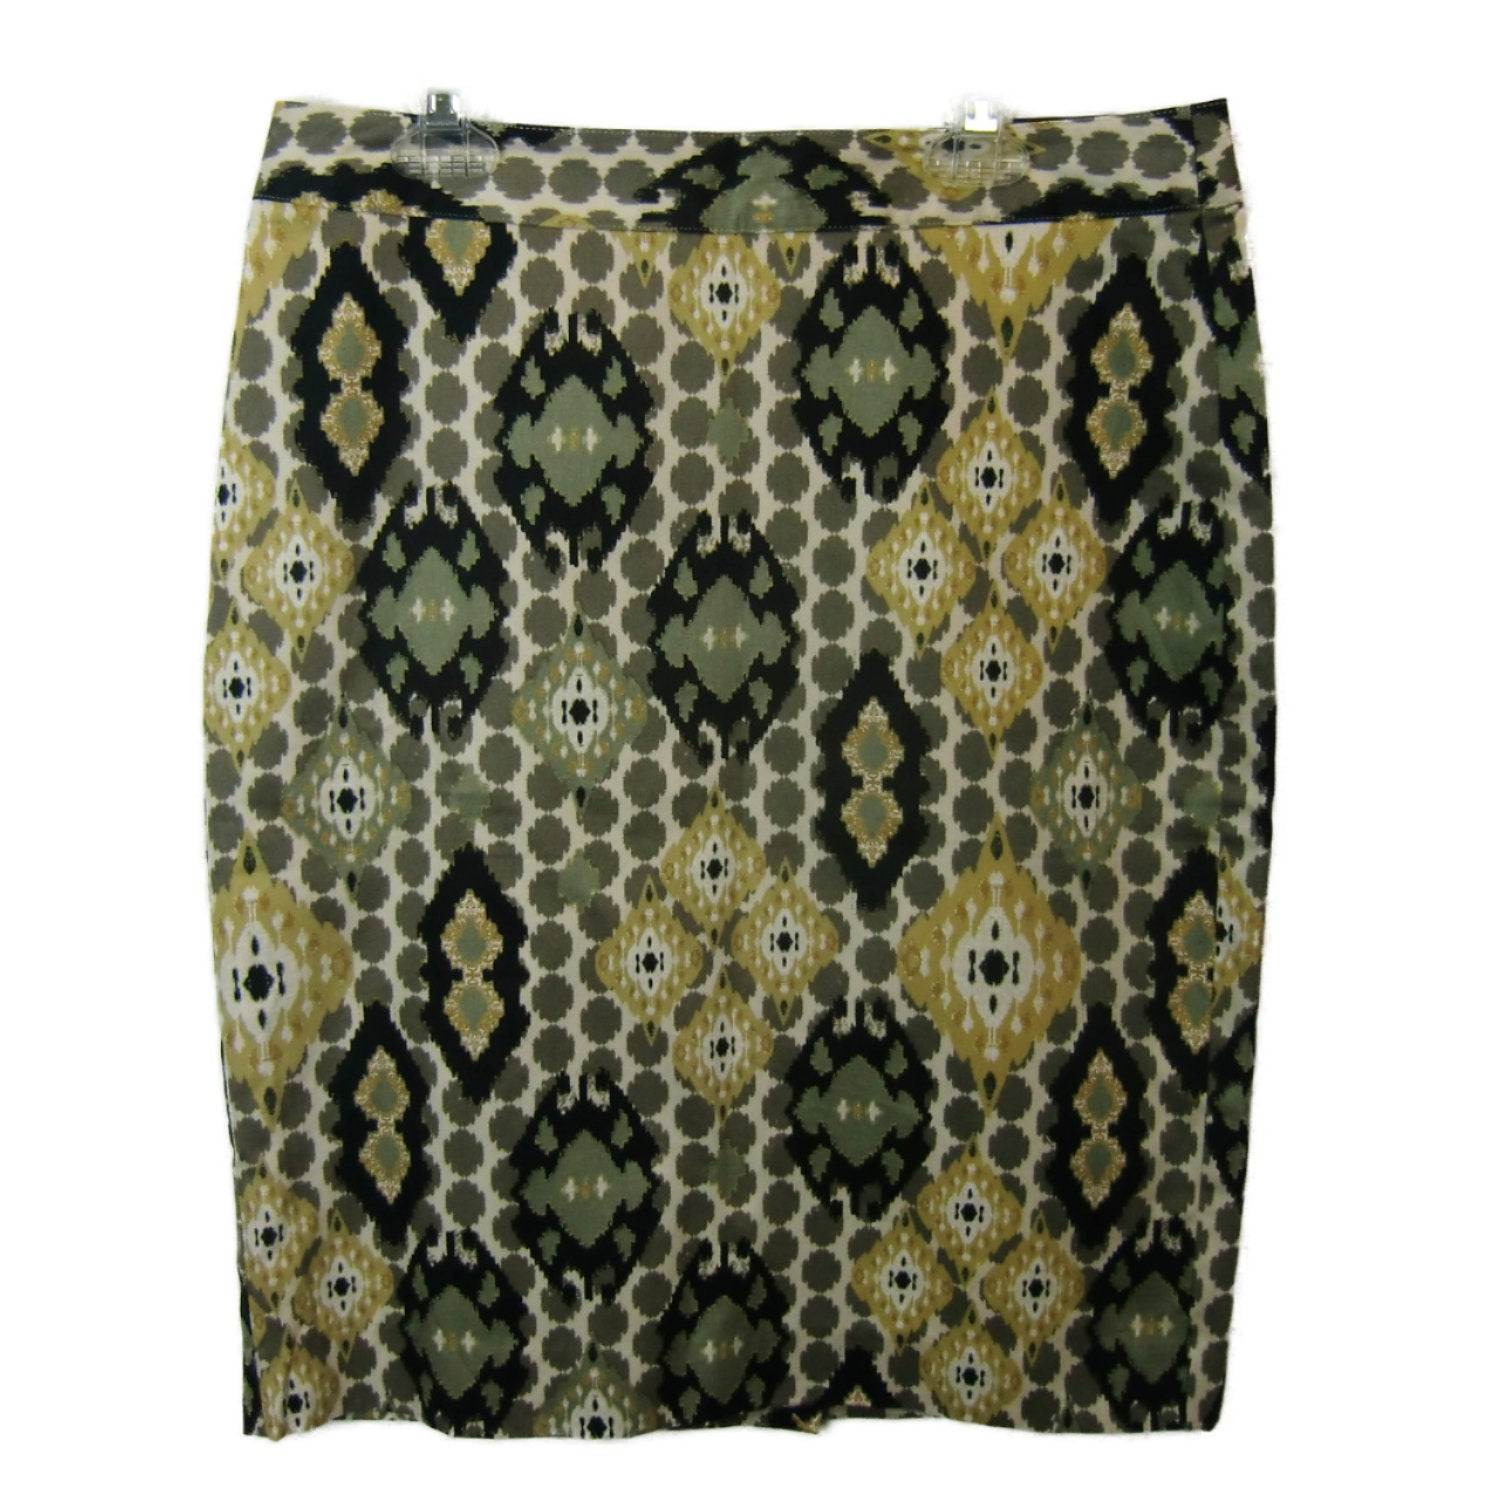 new Van Heusen ladies black and green skirt